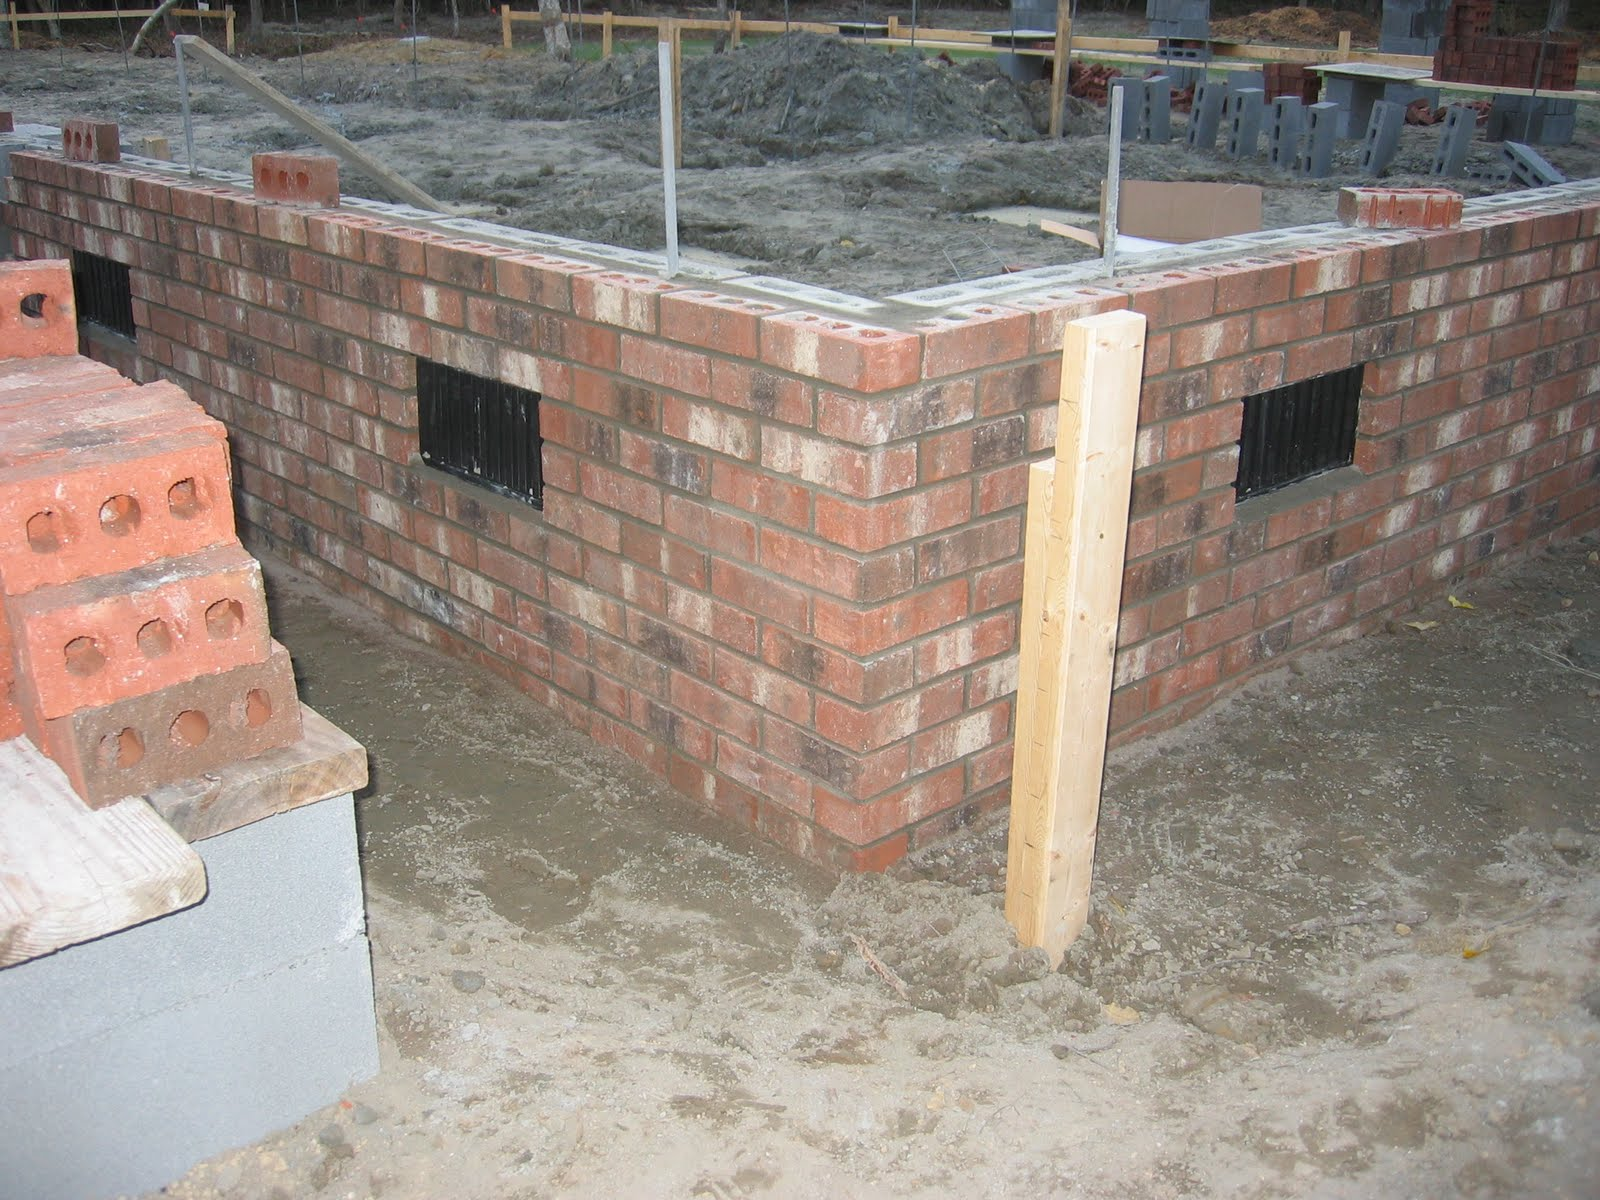 215 Ash Lane Brick Foundation